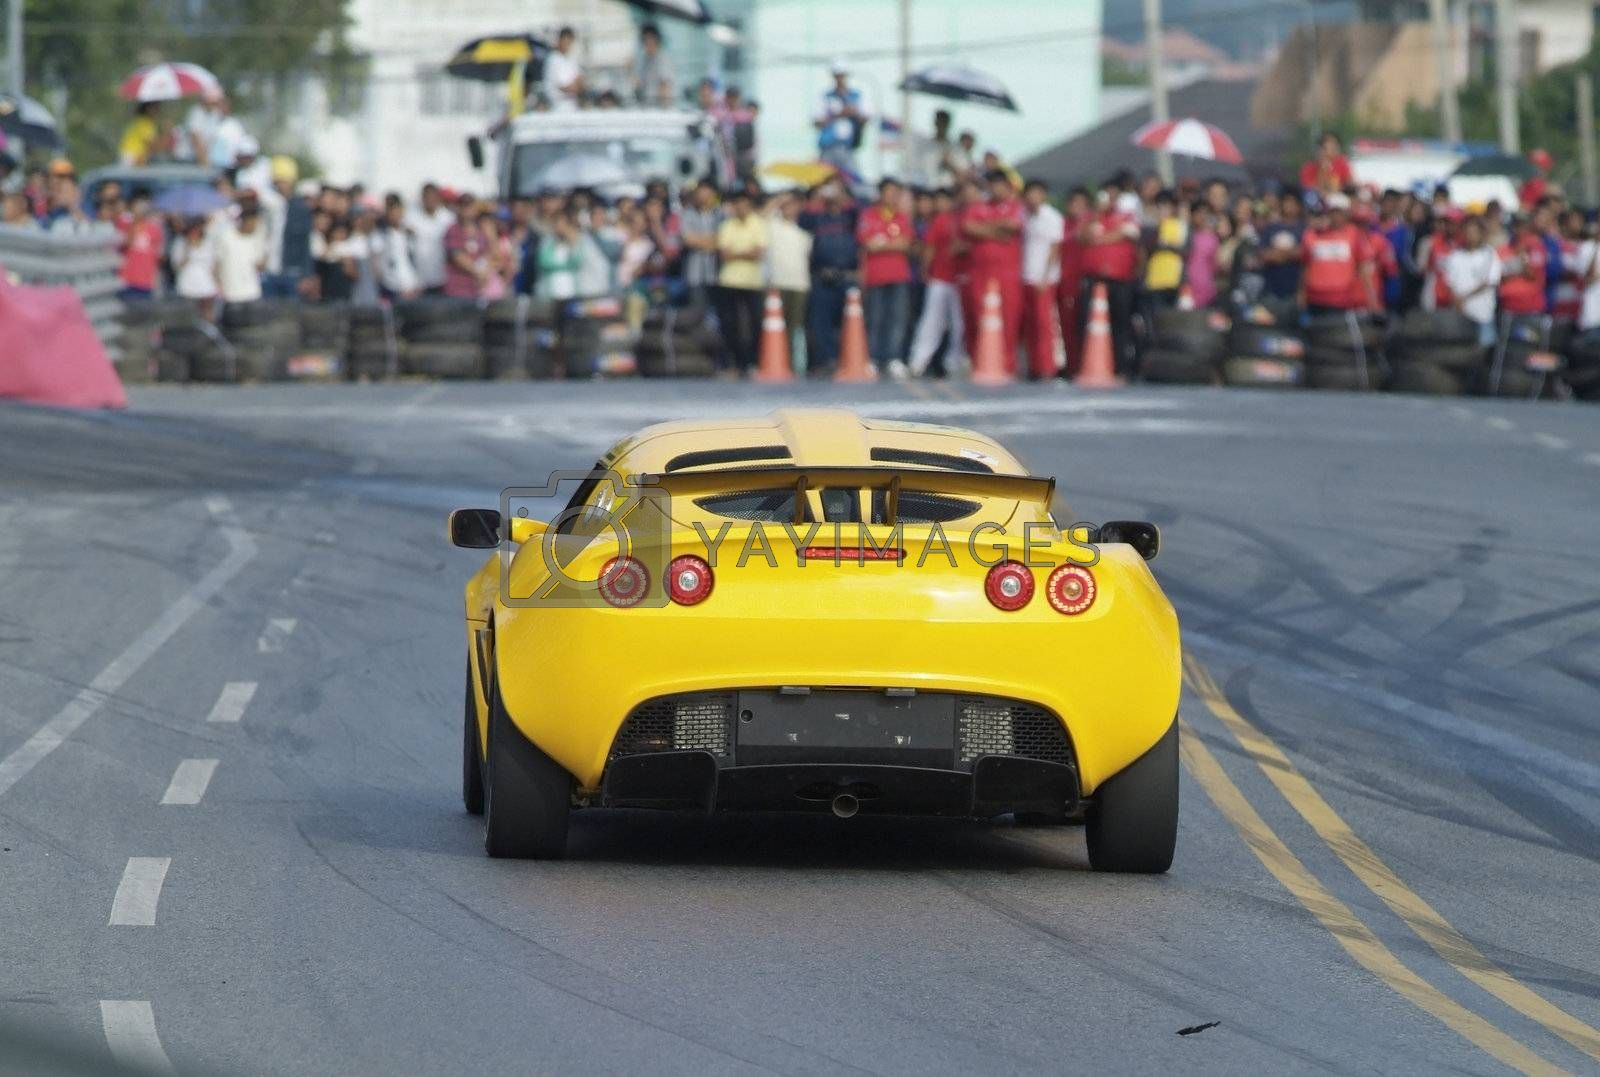 Racing car and spectators by epixx